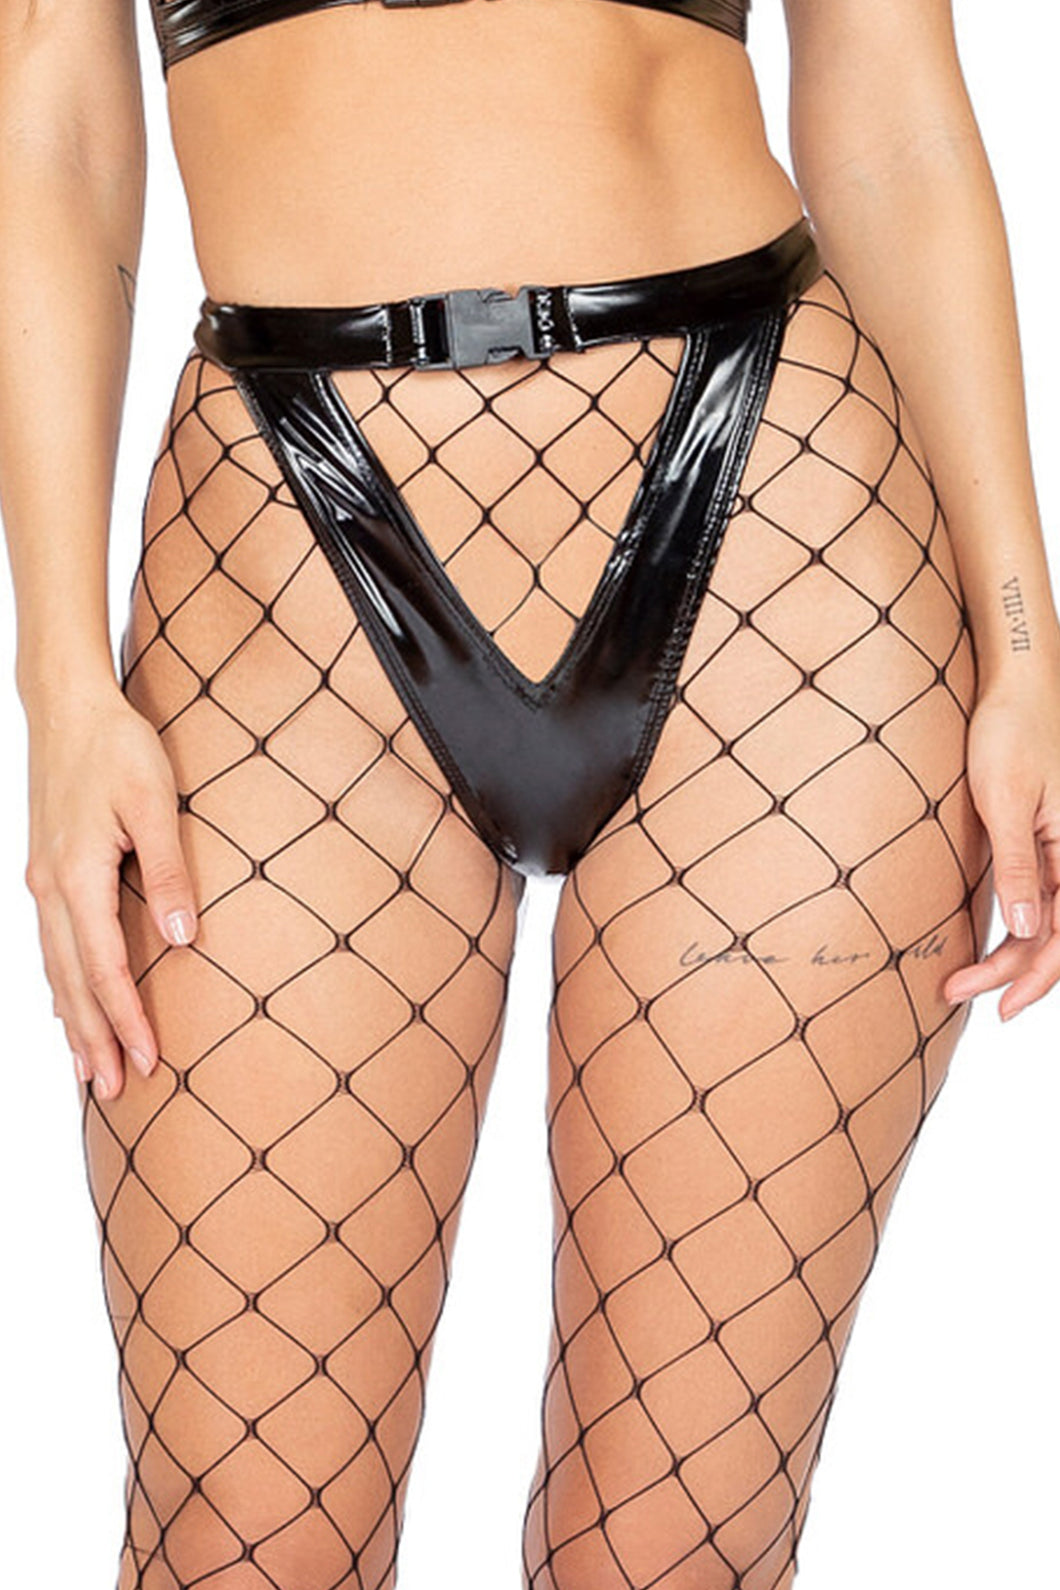 high cut buckled black latex cheeky shorts